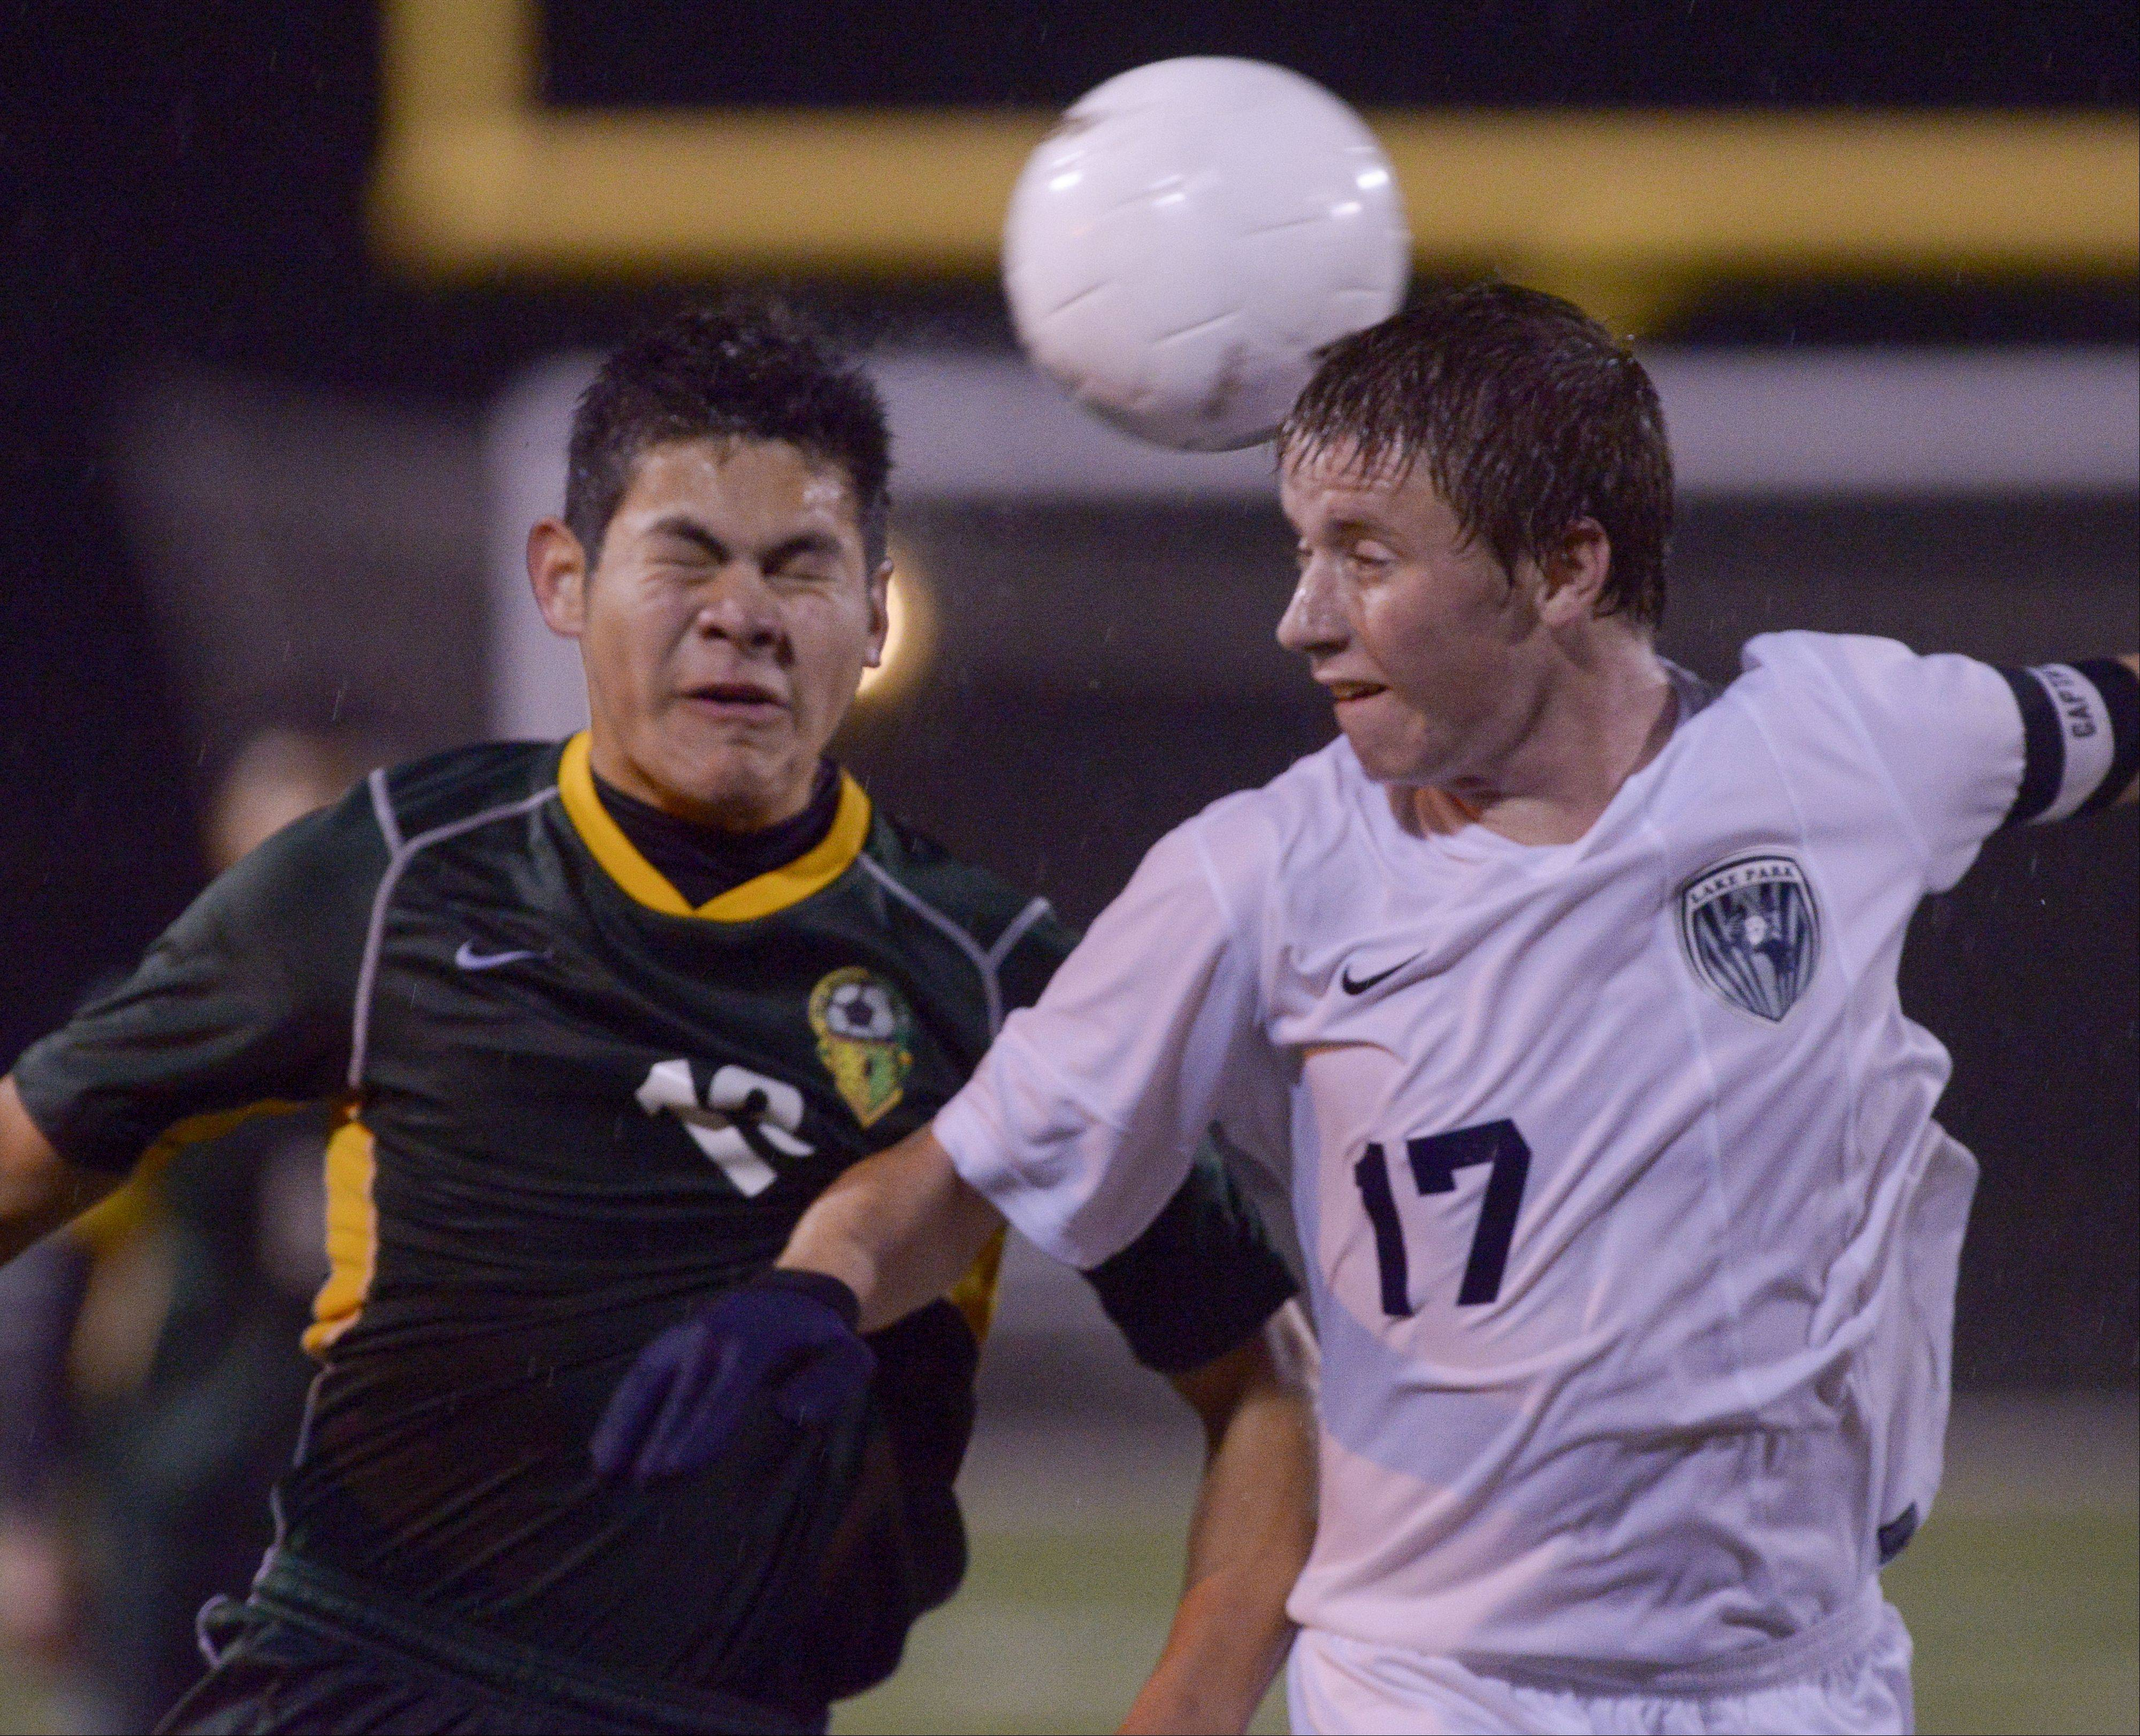 Arnold Aguilar of Elk Grove and Joe Keane of Lake Park battle for control of the ball during in the Class 3A Schaumburg sectional semifinals Wednesday.